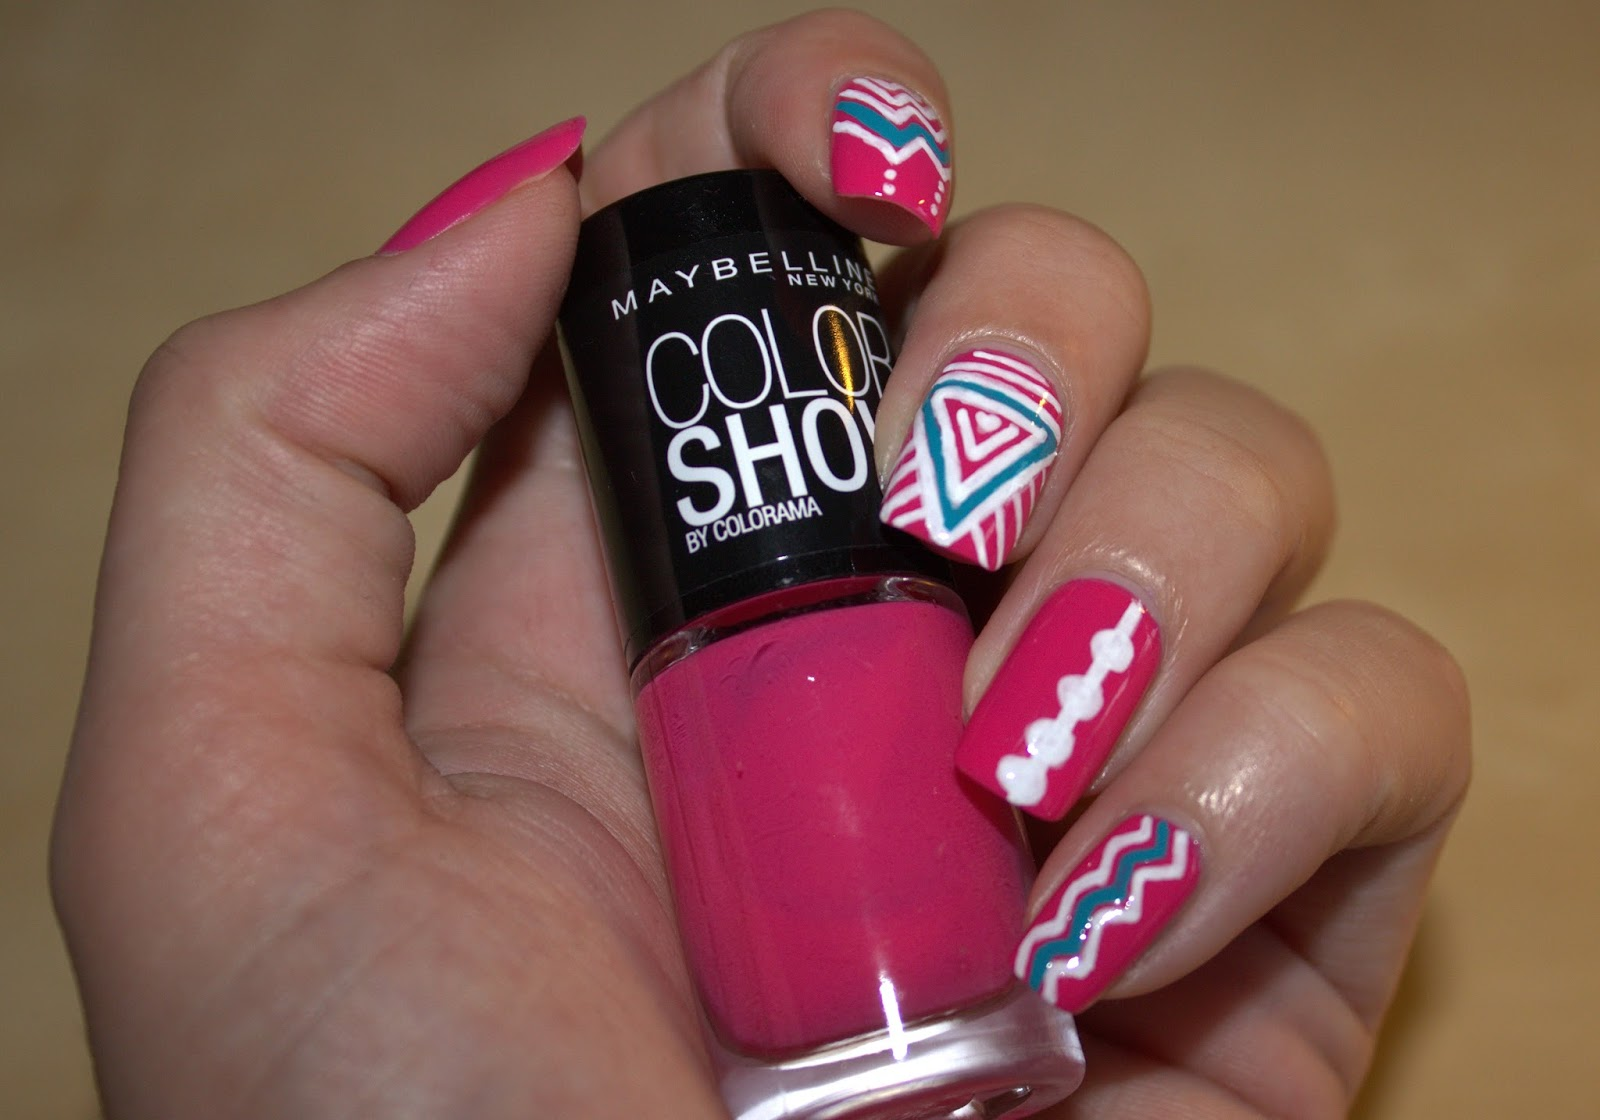 http://hungrynails.blogspot.de/2014/06/maybelline-woche-1-nail-designer-look.html